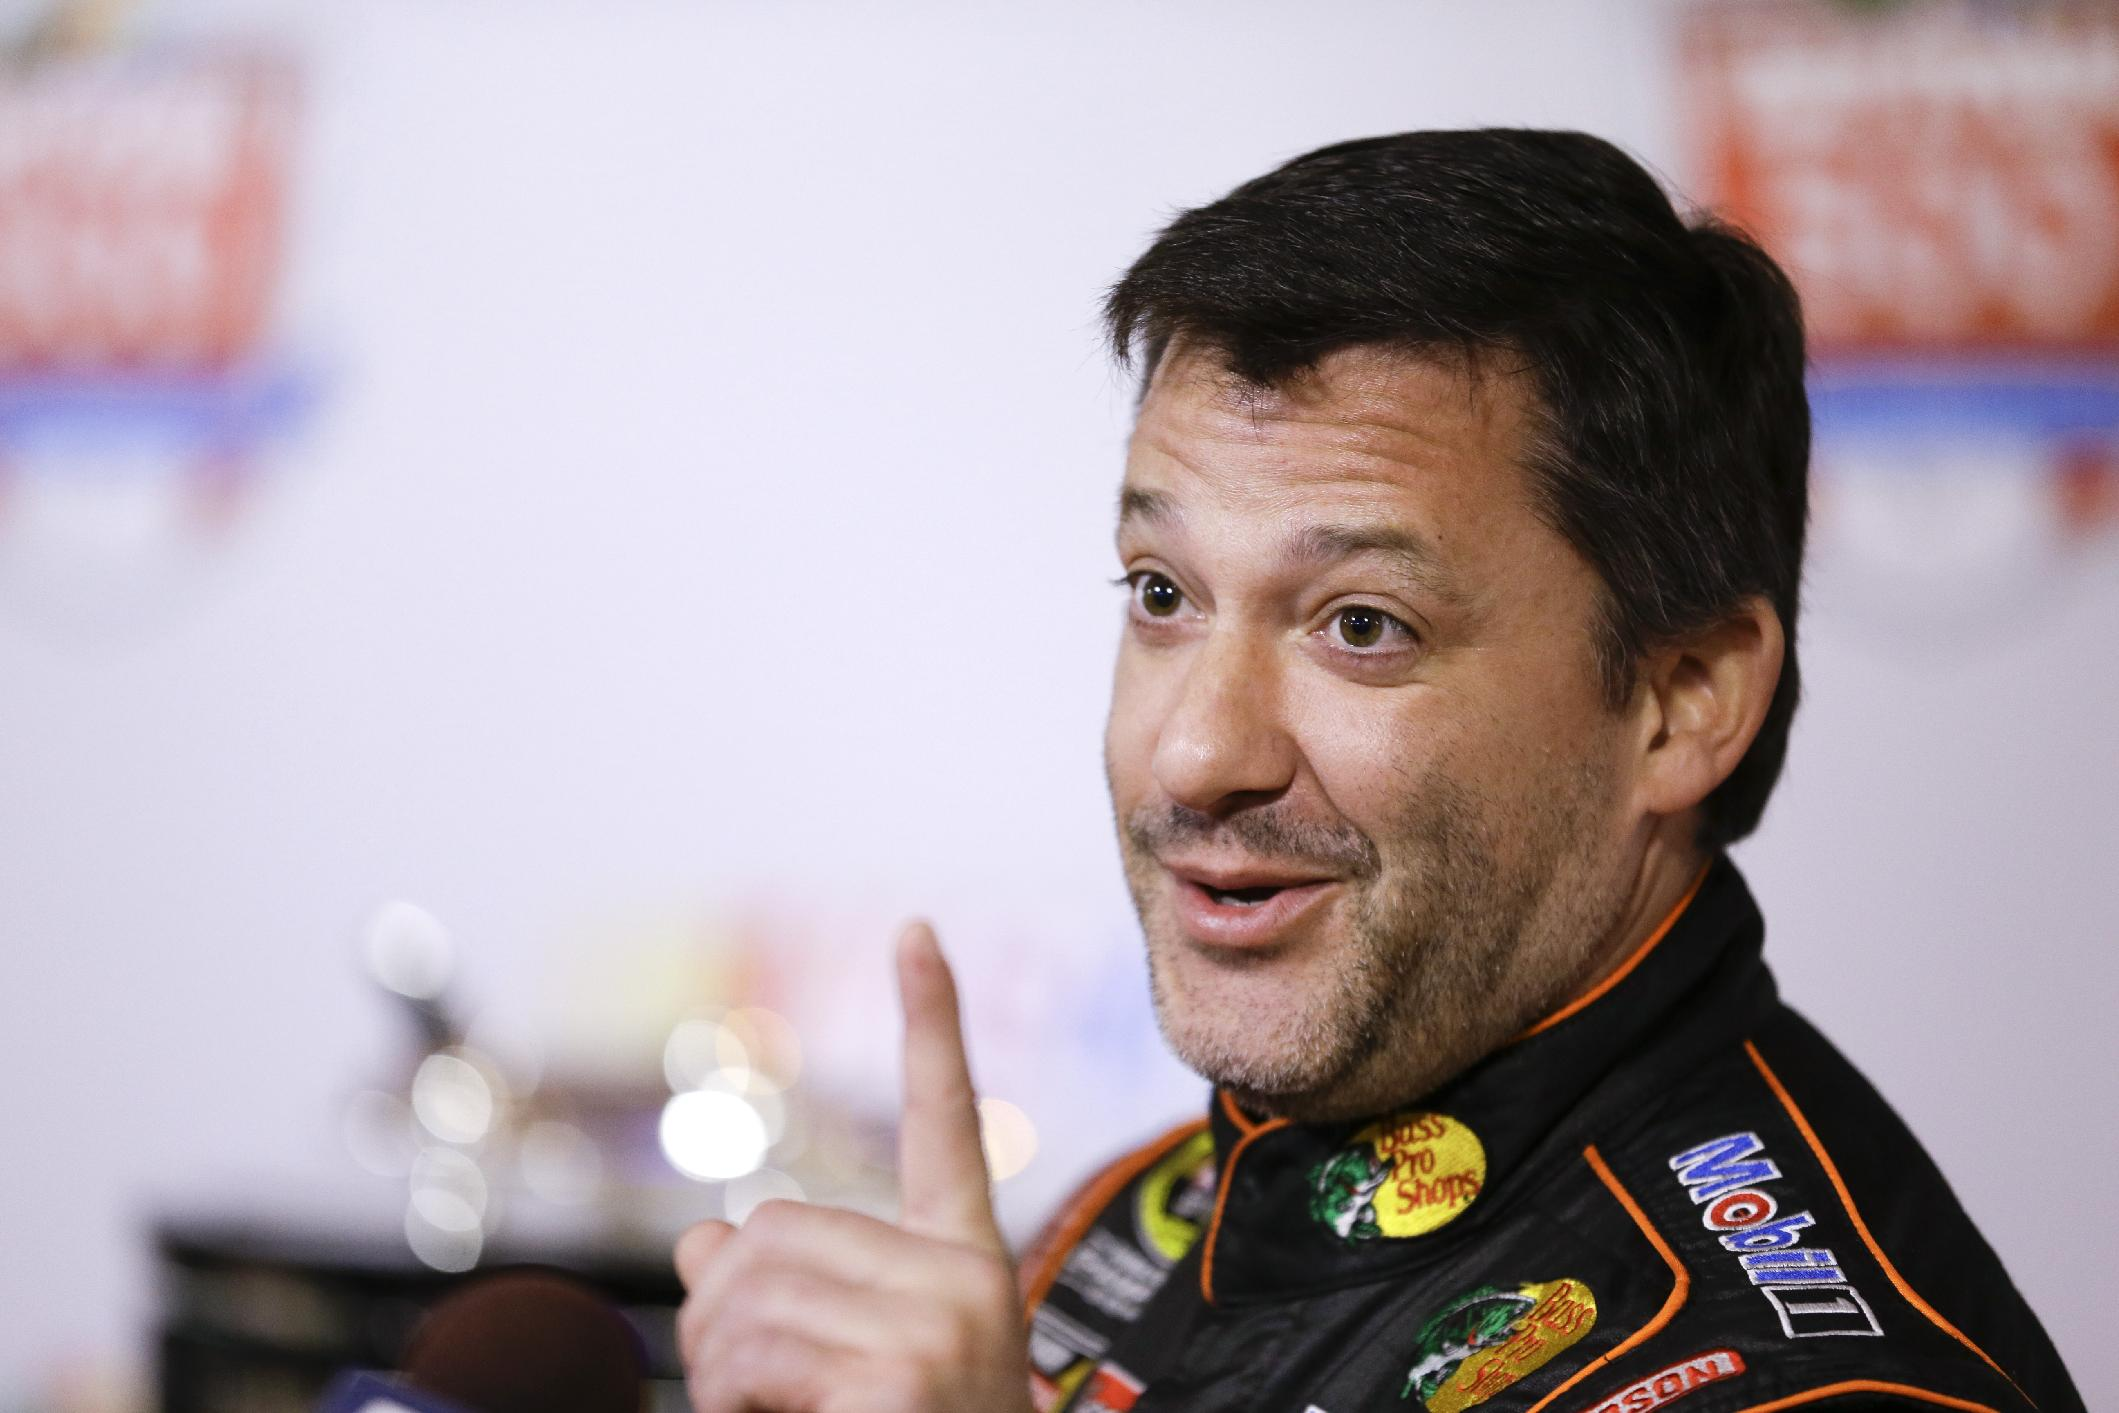 Stewart returns to racing, undaunted by layoff